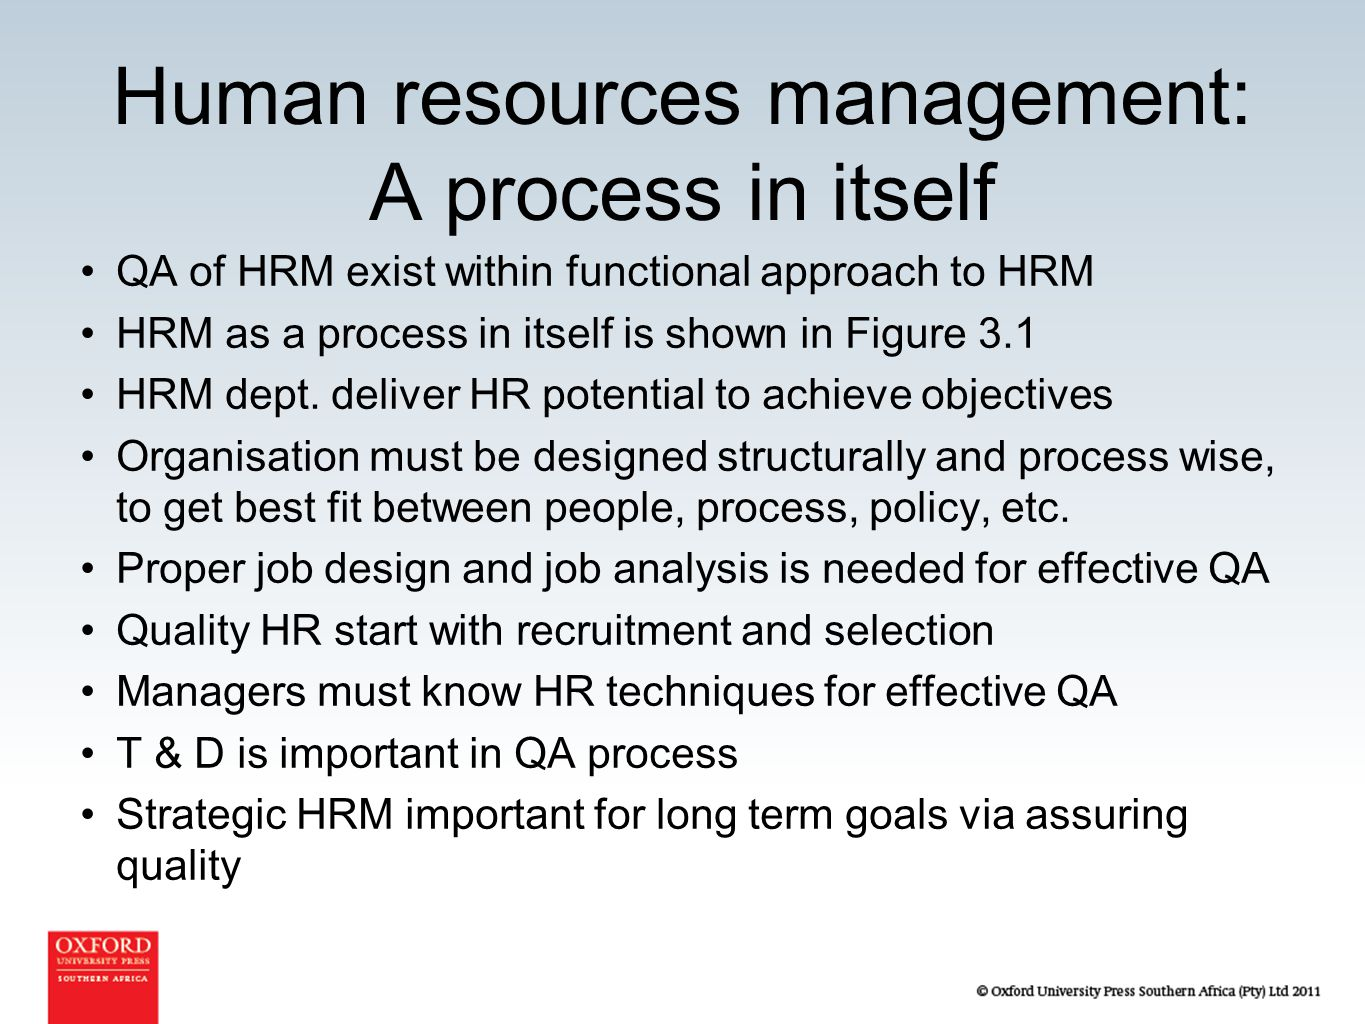 how to get into human resources management